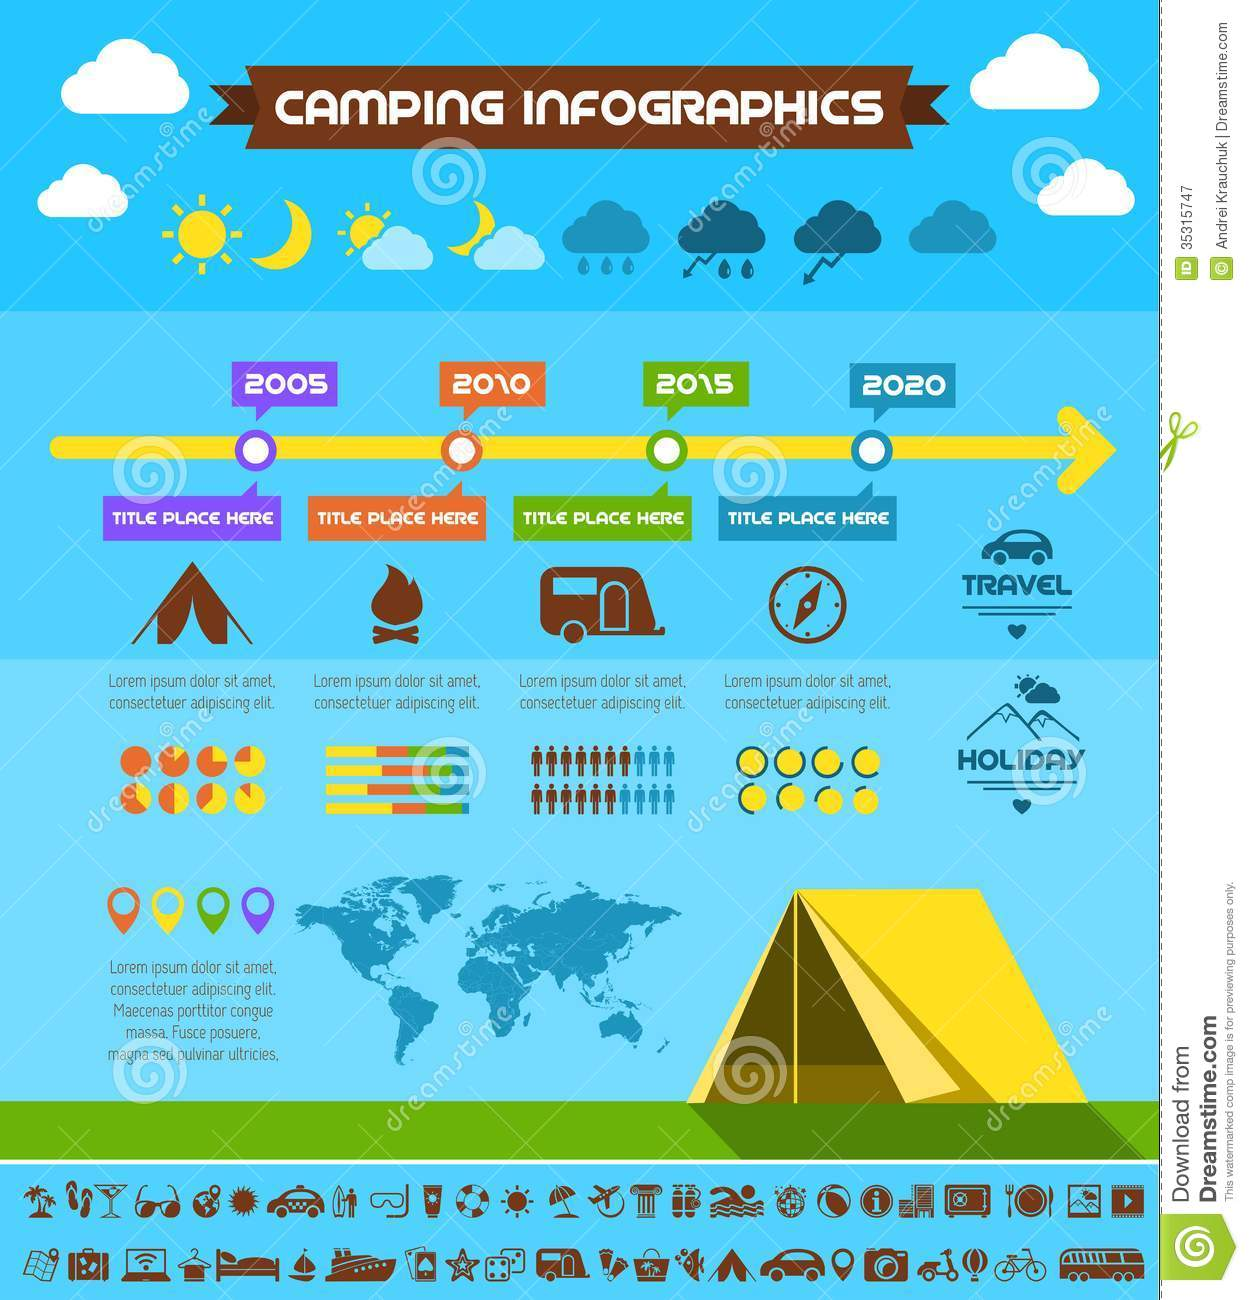 Flat Camping Infographic Template Royalty Free Stock